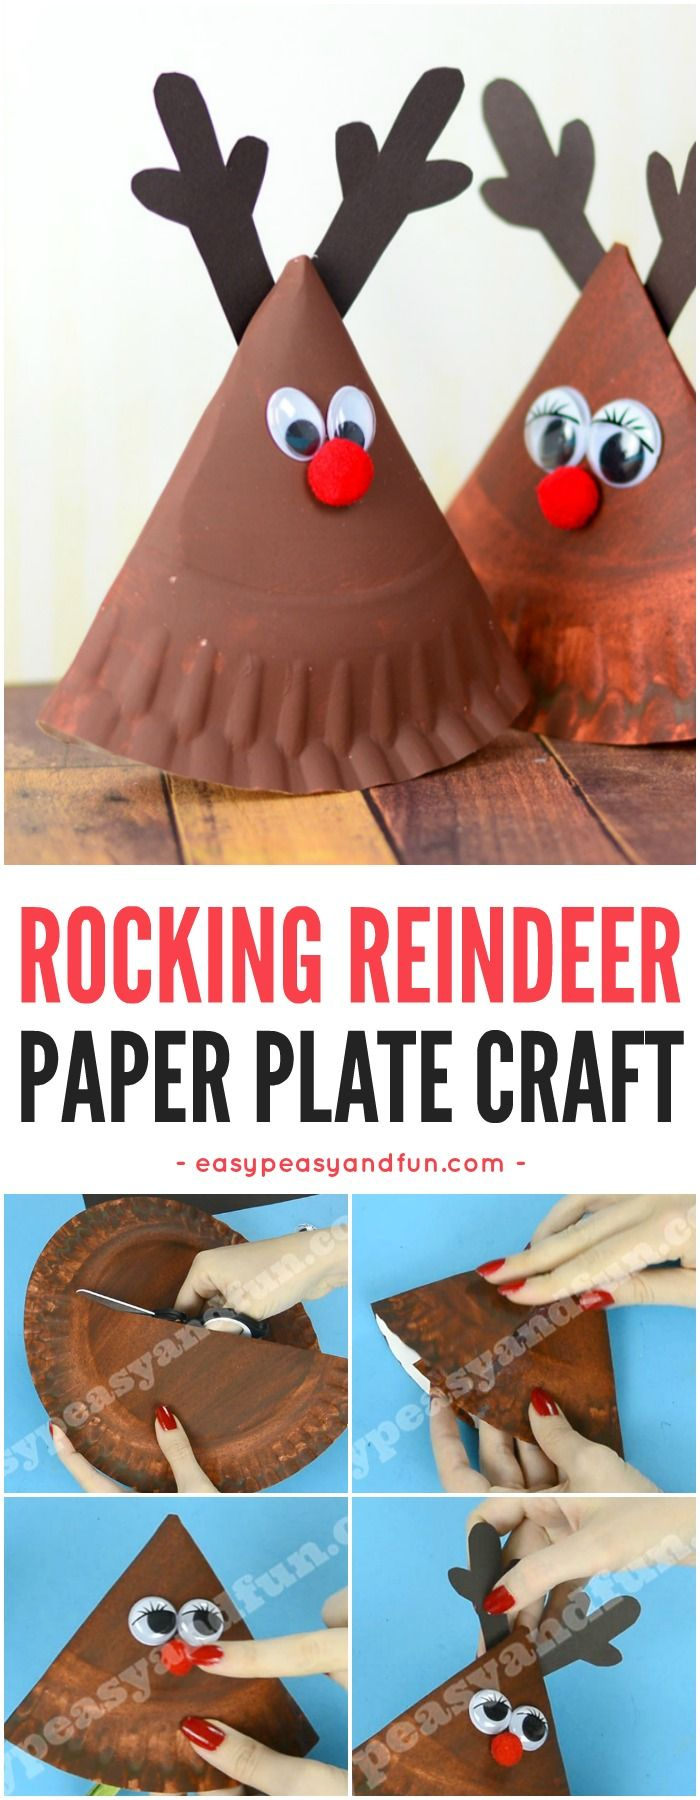 Cute Rocking Paper Plate Reindeer Craft for Kids. Super Fun Christmas Craft Idea for Kids to Make.